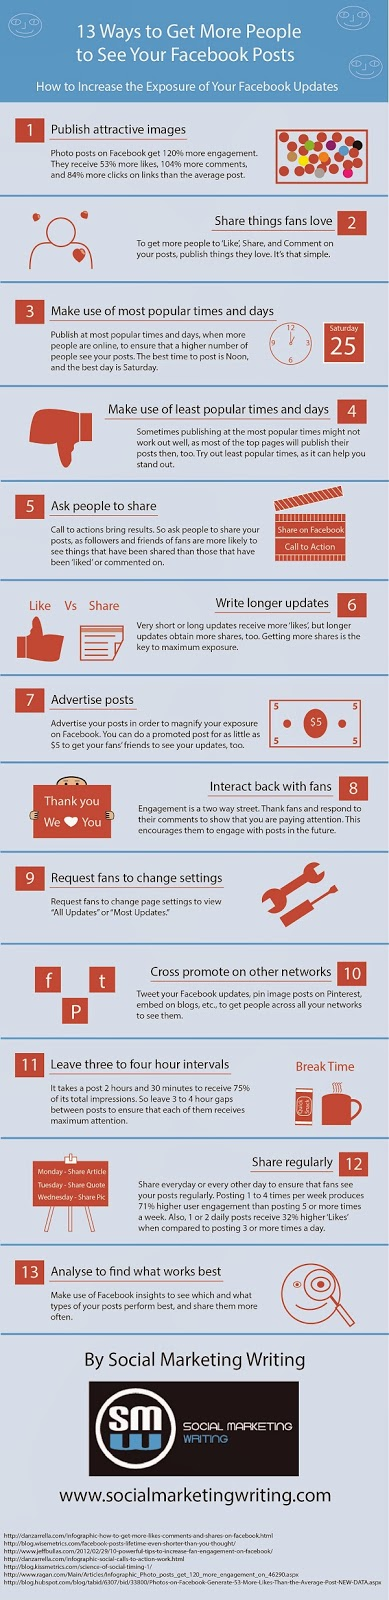 http://socialmarketingwriting.com/13-ways-to-boost-your-facebook-posts-exposure-infographic/